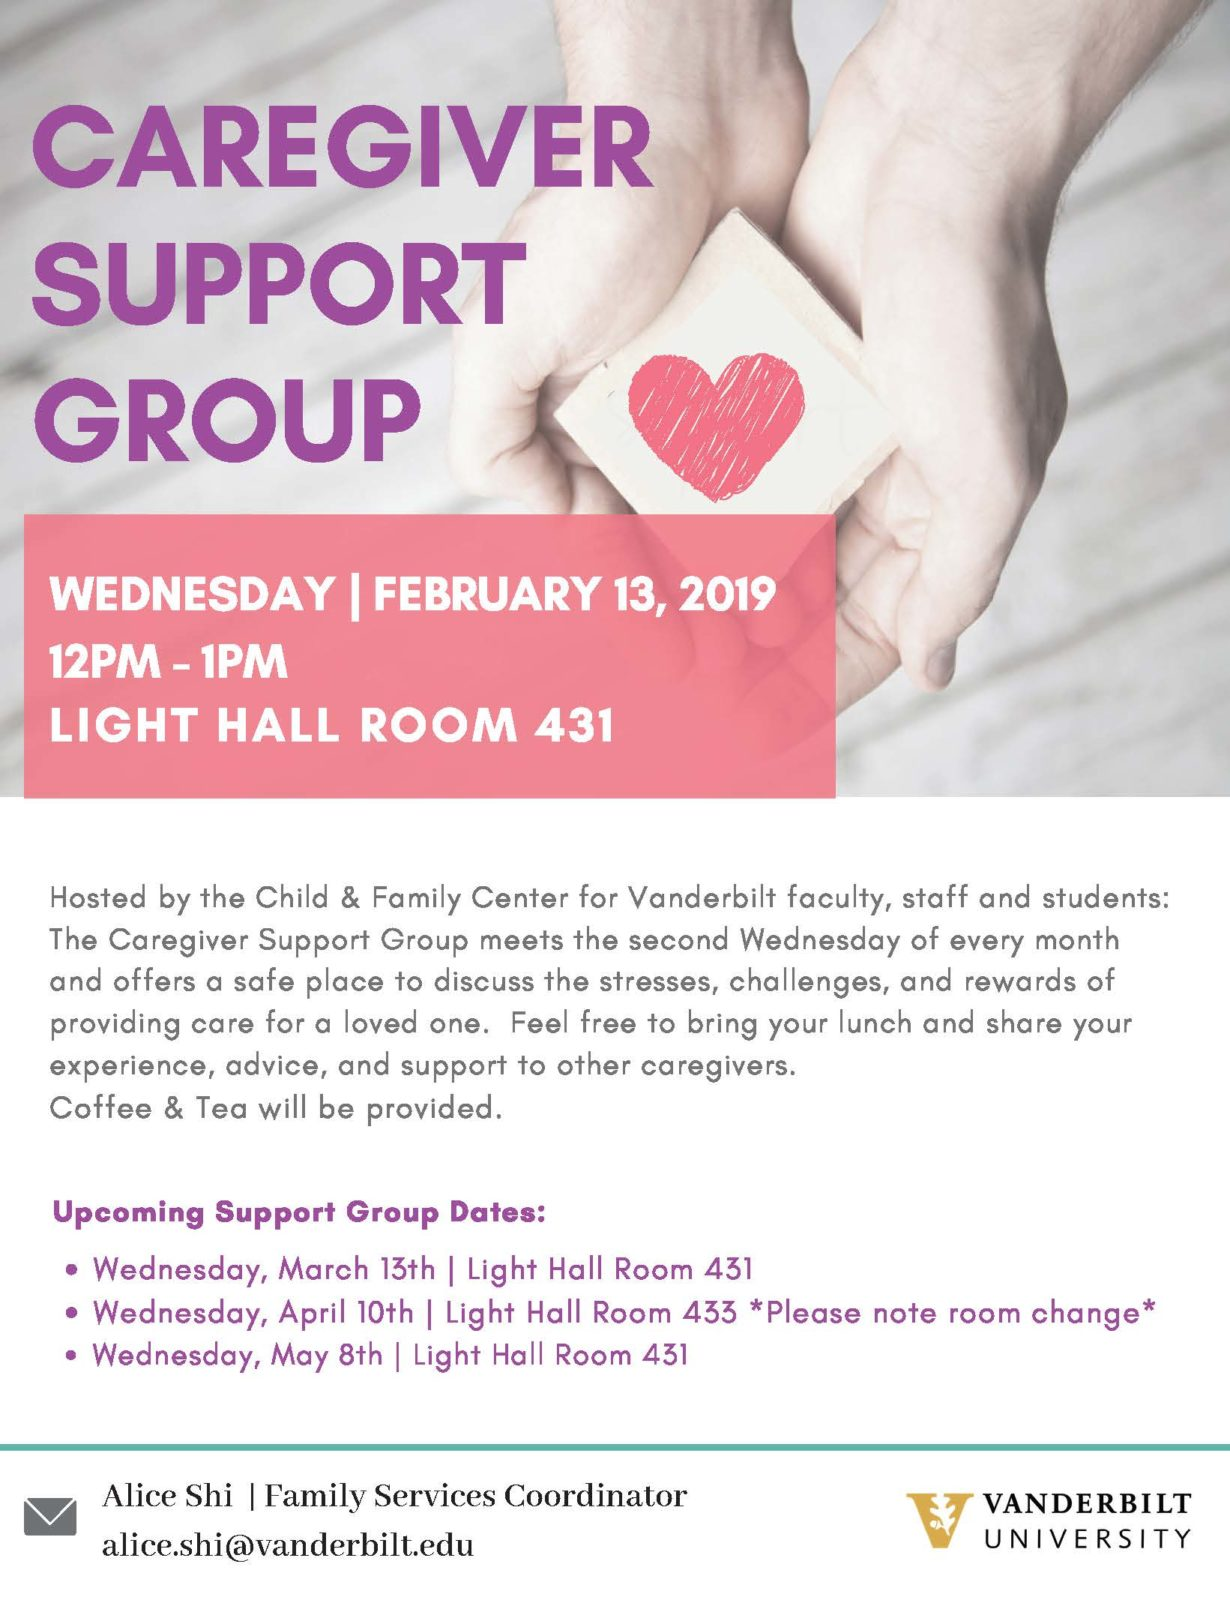 Caregiver Support Group event poster